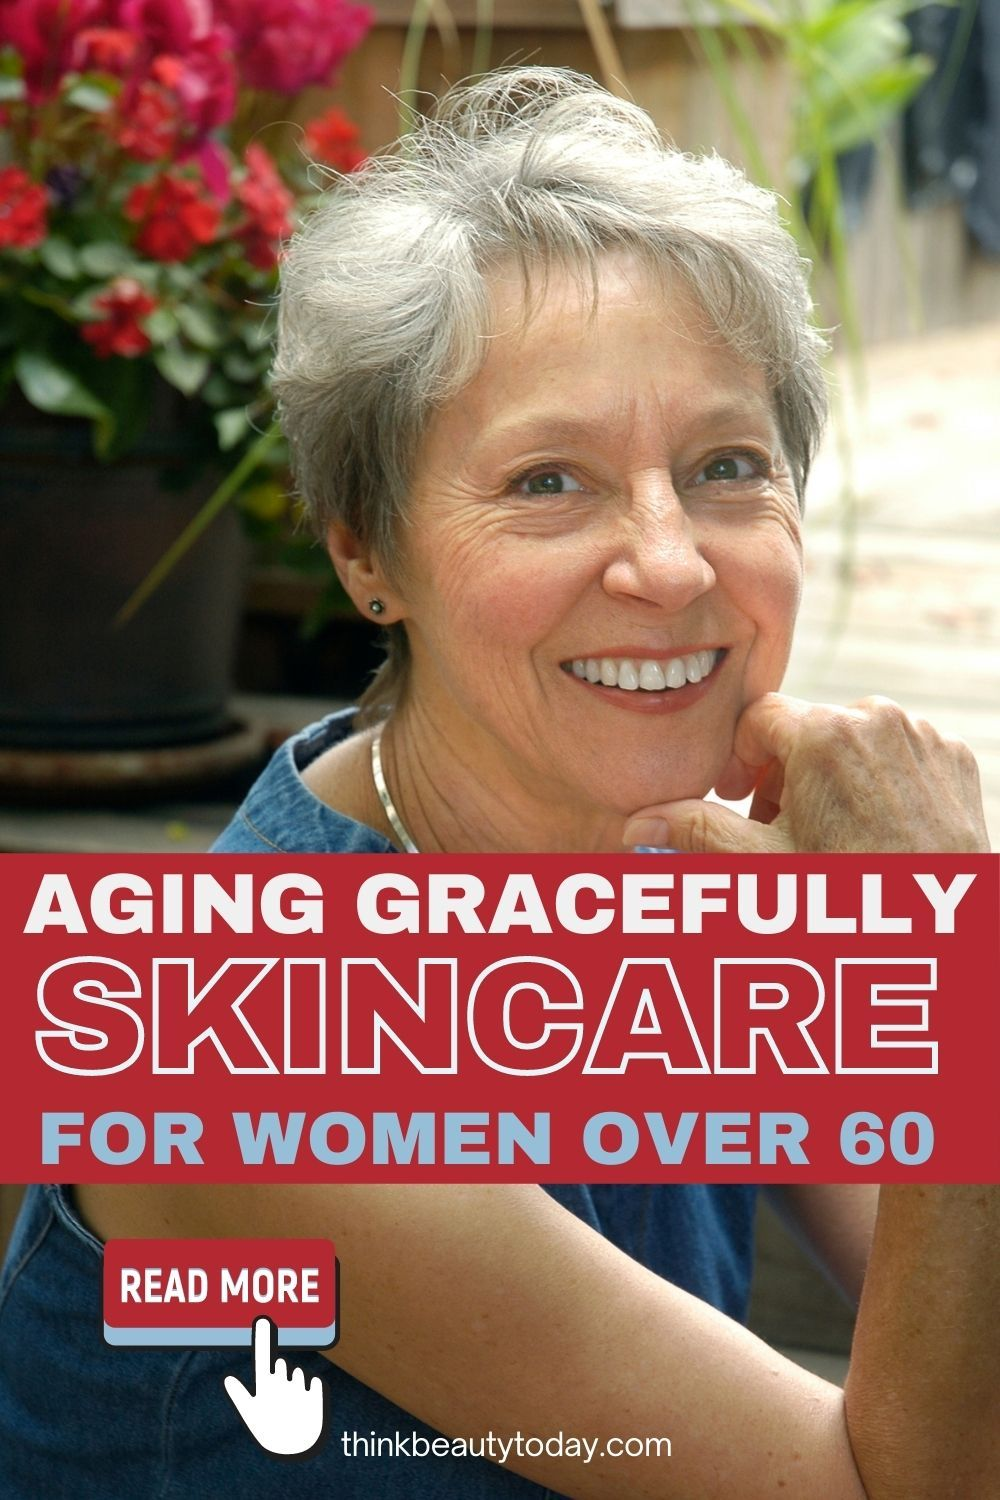 Best Avon Moisturizer For Aging Skin Over 60 Anti Aging Products 2020 In 2020 Affordable Skin Care Routine Avon Skin Care Anti Aging Skincare Routine